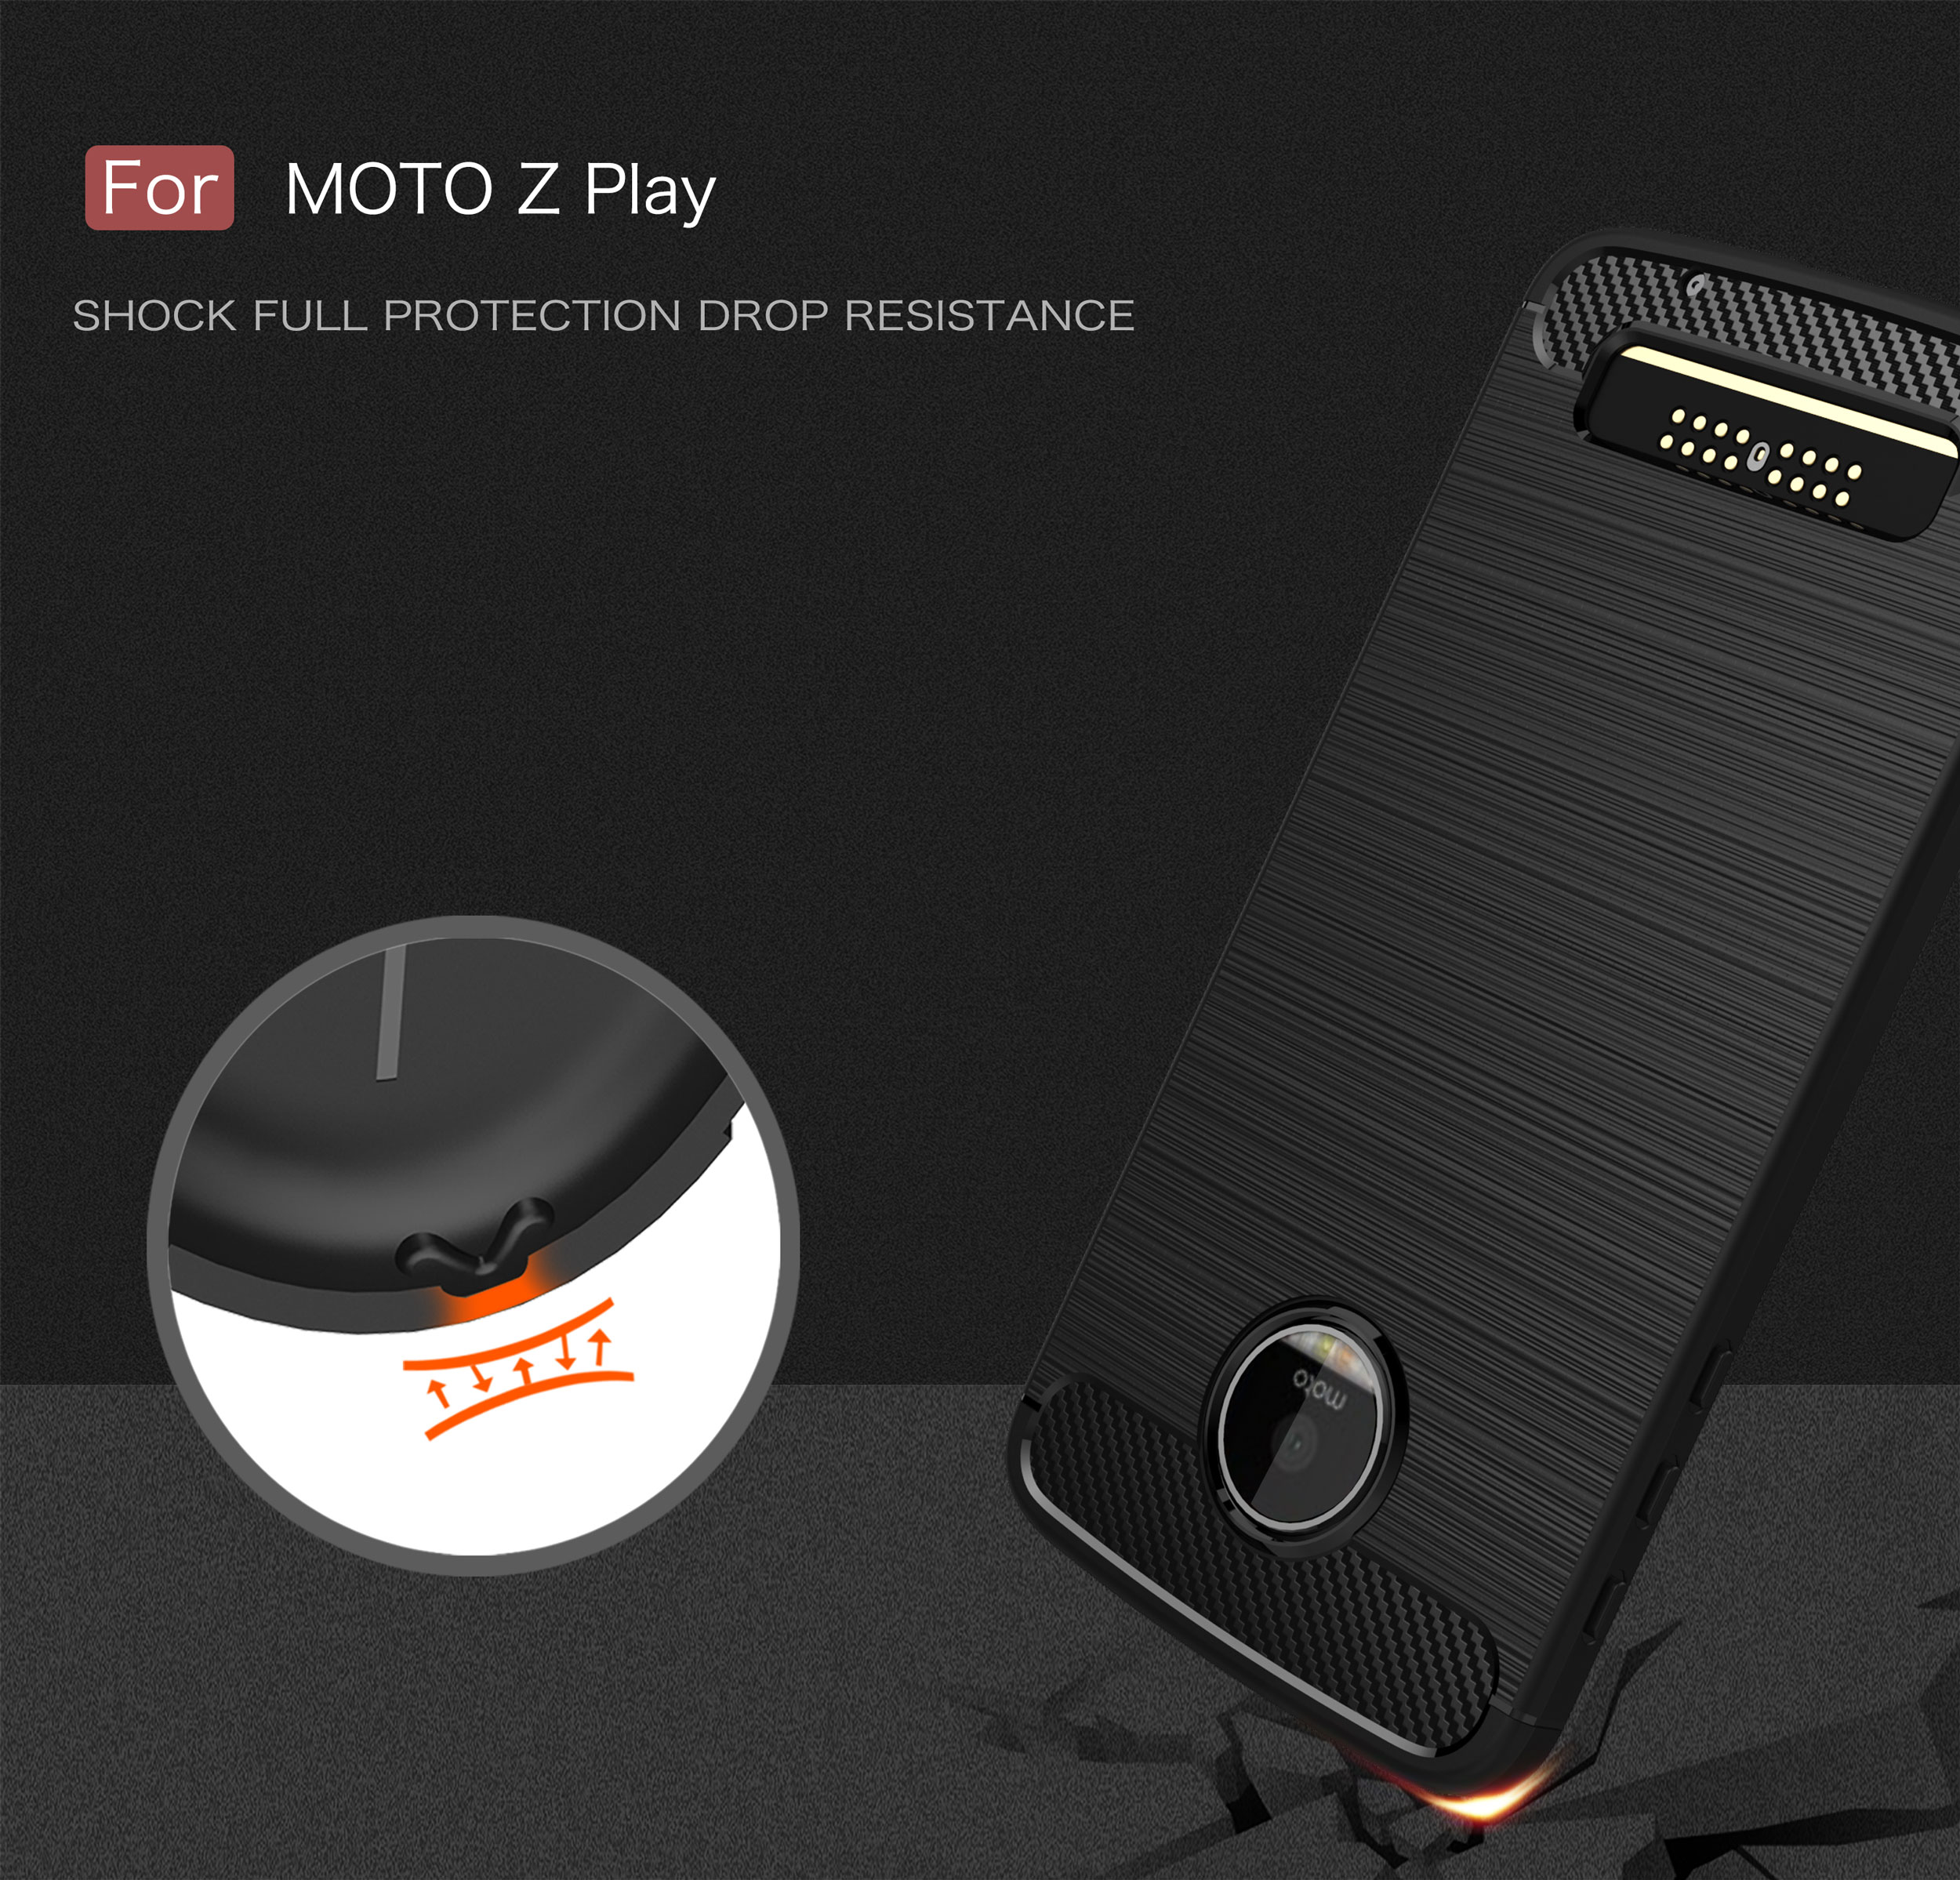 Simple Carbon Fiber Soft Silicone Back Cover Case For MOTO Z PLAY